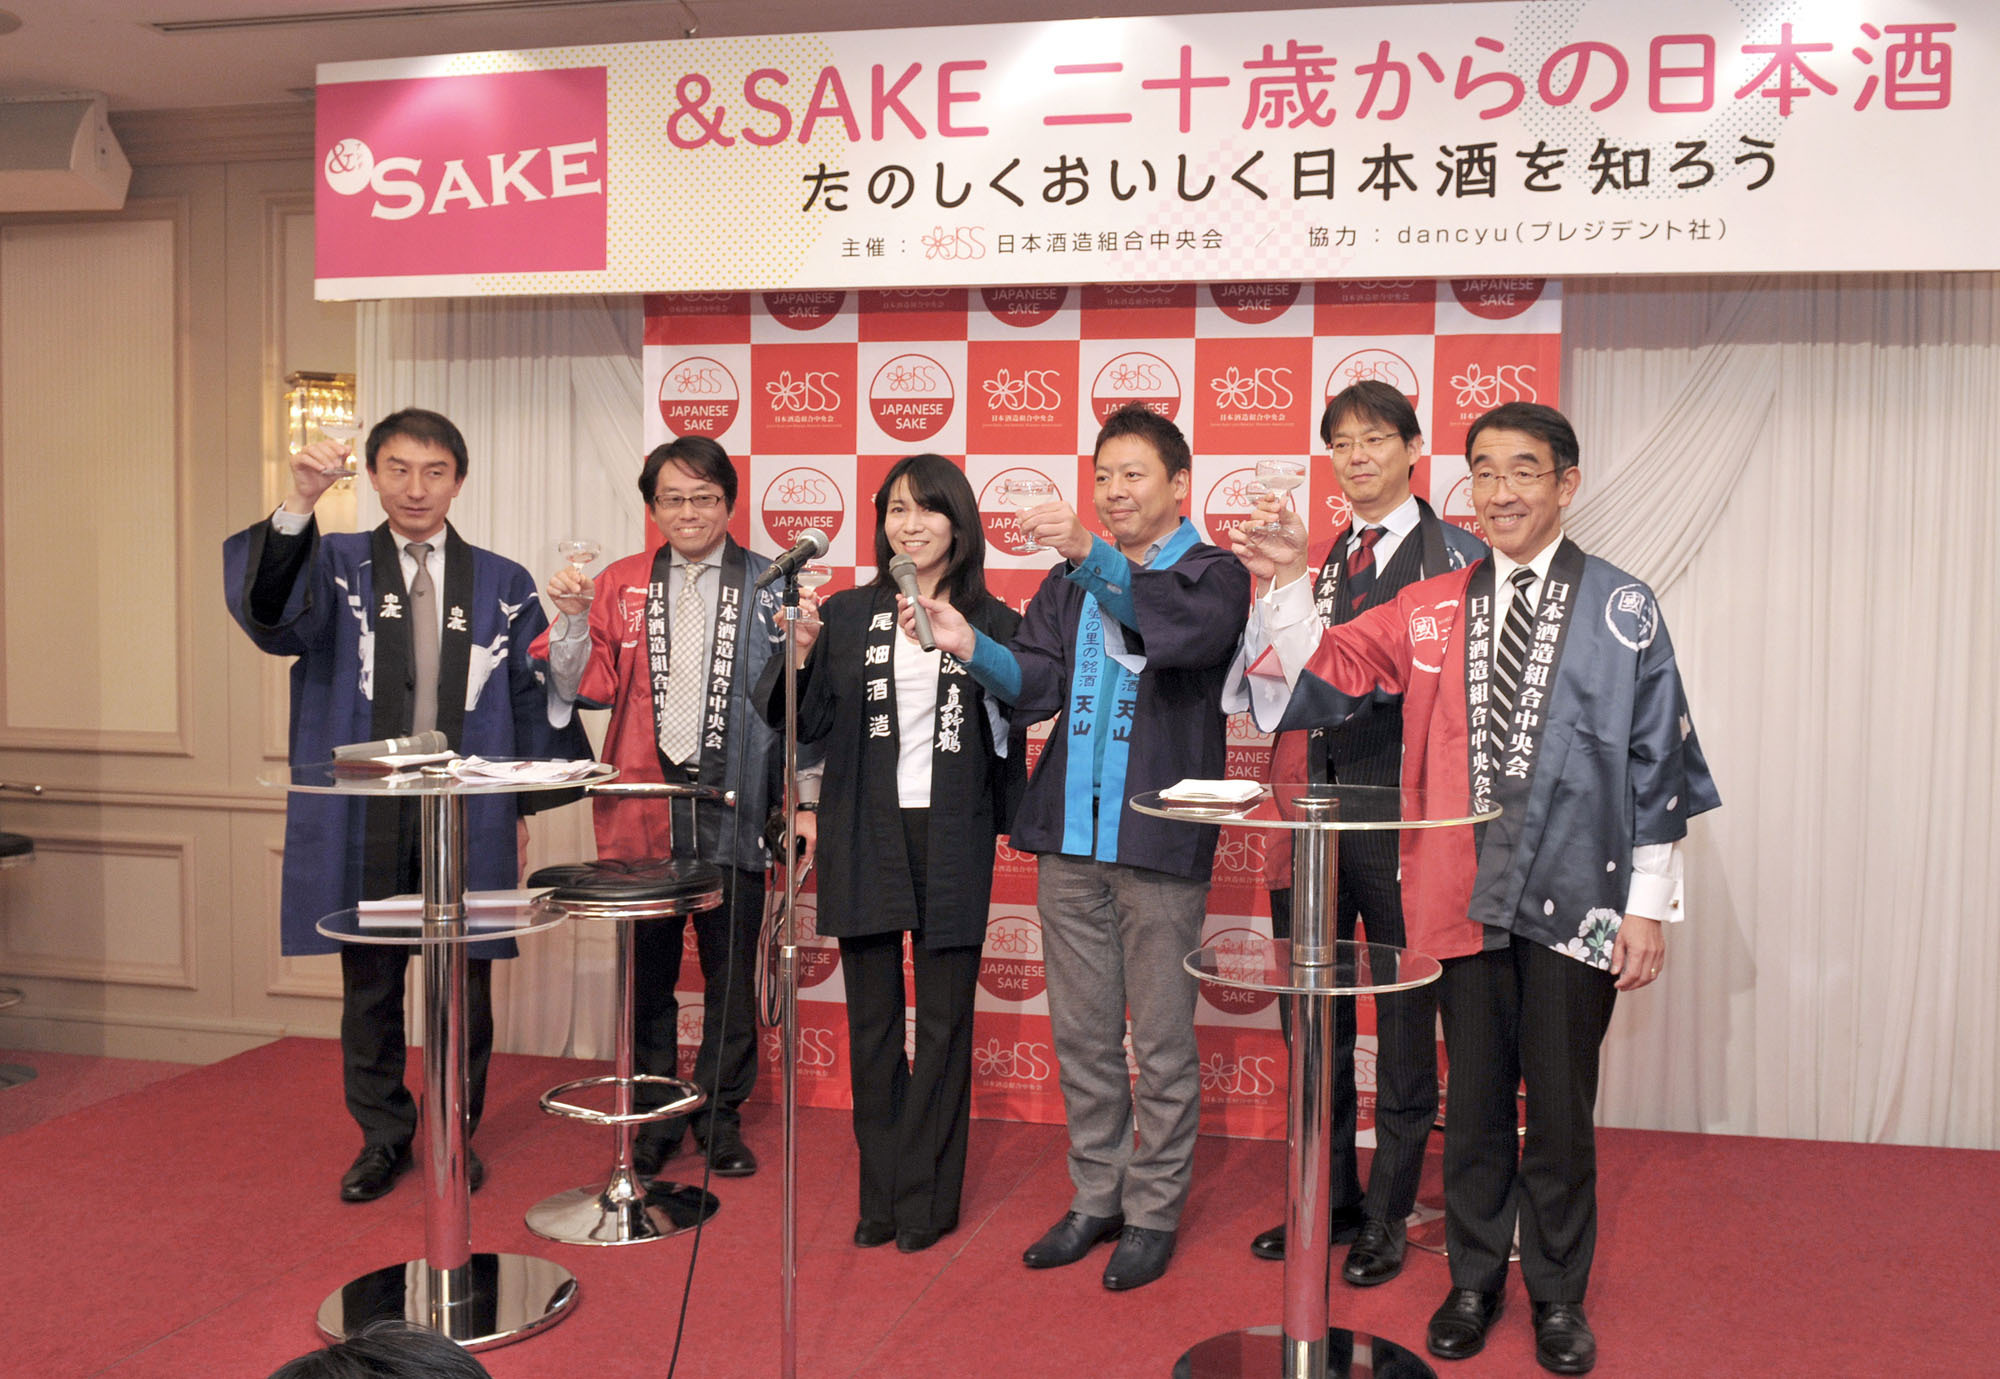 Koichi Saura (right), president of Saura Co. and chairman of the sake sales promotion committee of the Japan Sake and Shochu Makers Association, along with representatives of the sake industry and committee members, share a toast to kick off an event featuring sake tasting, cooking and education for about 100 twenty-year-olds celebrating Coming-of-Age Day. | YOSHIAKI MIURA